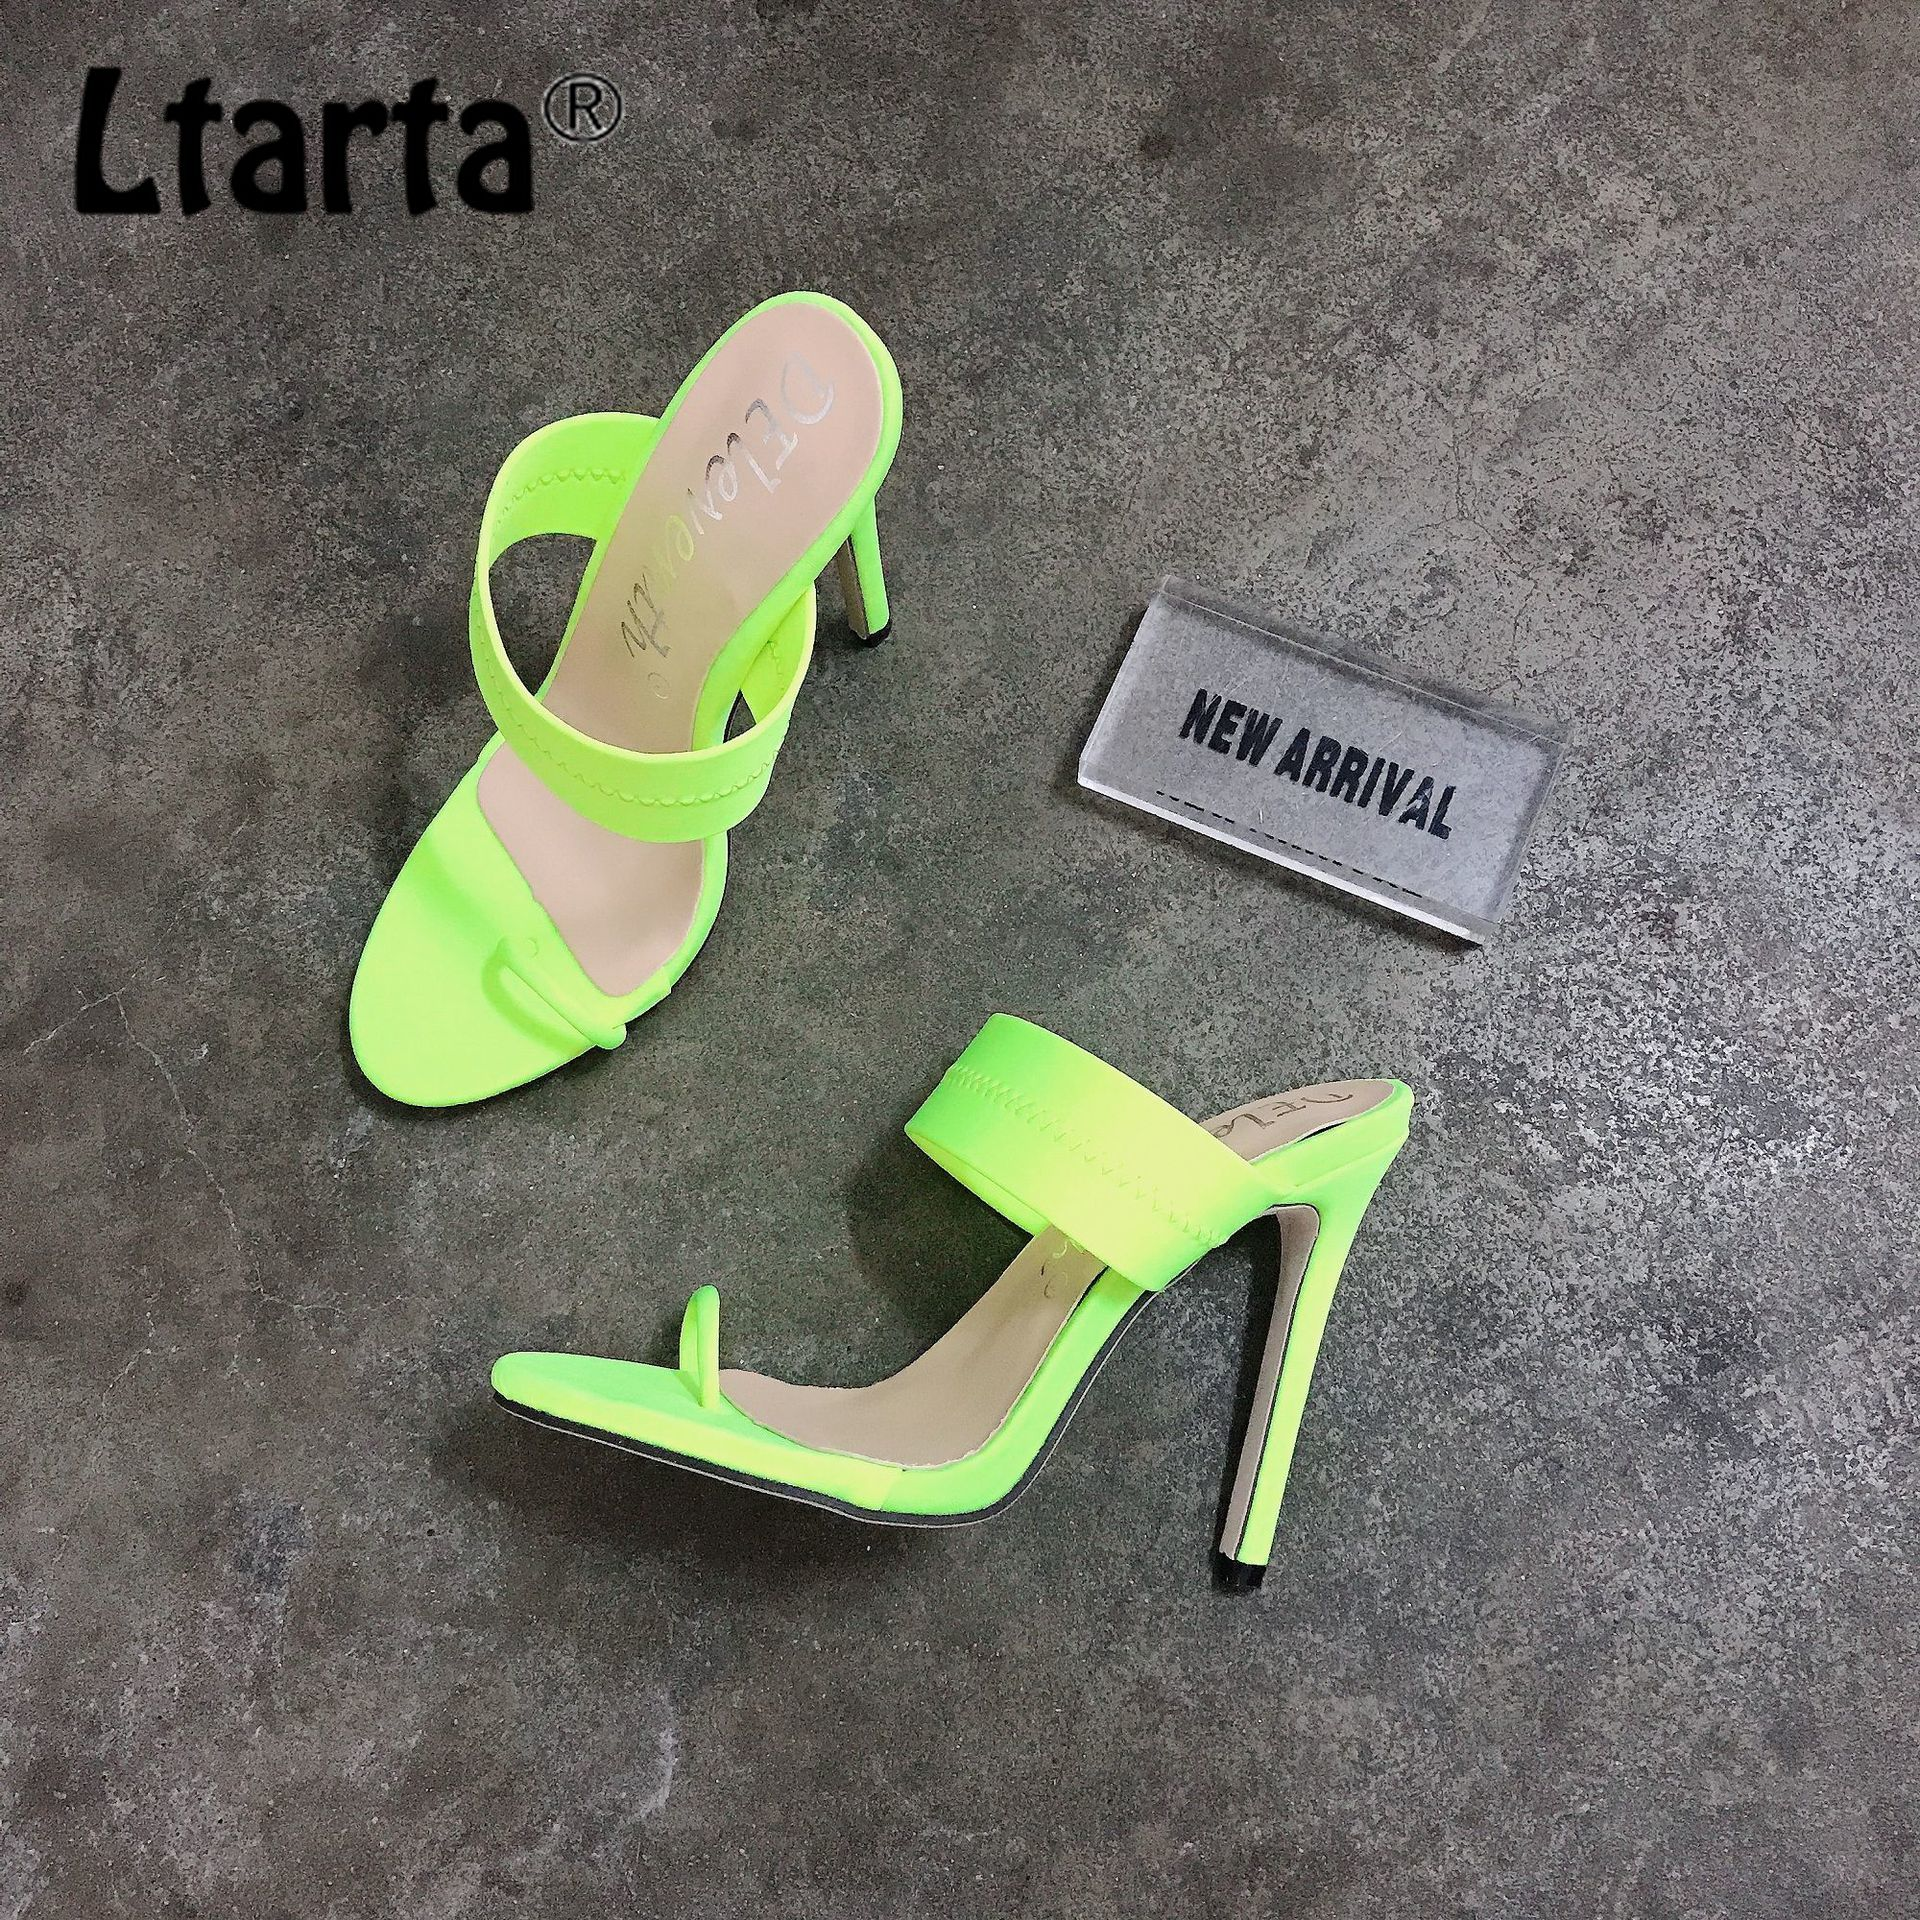 LTARTA Supply Sandals Women Heeled-Heels Large-Size Word Candy with Shoes 43 12CM ZL-B77